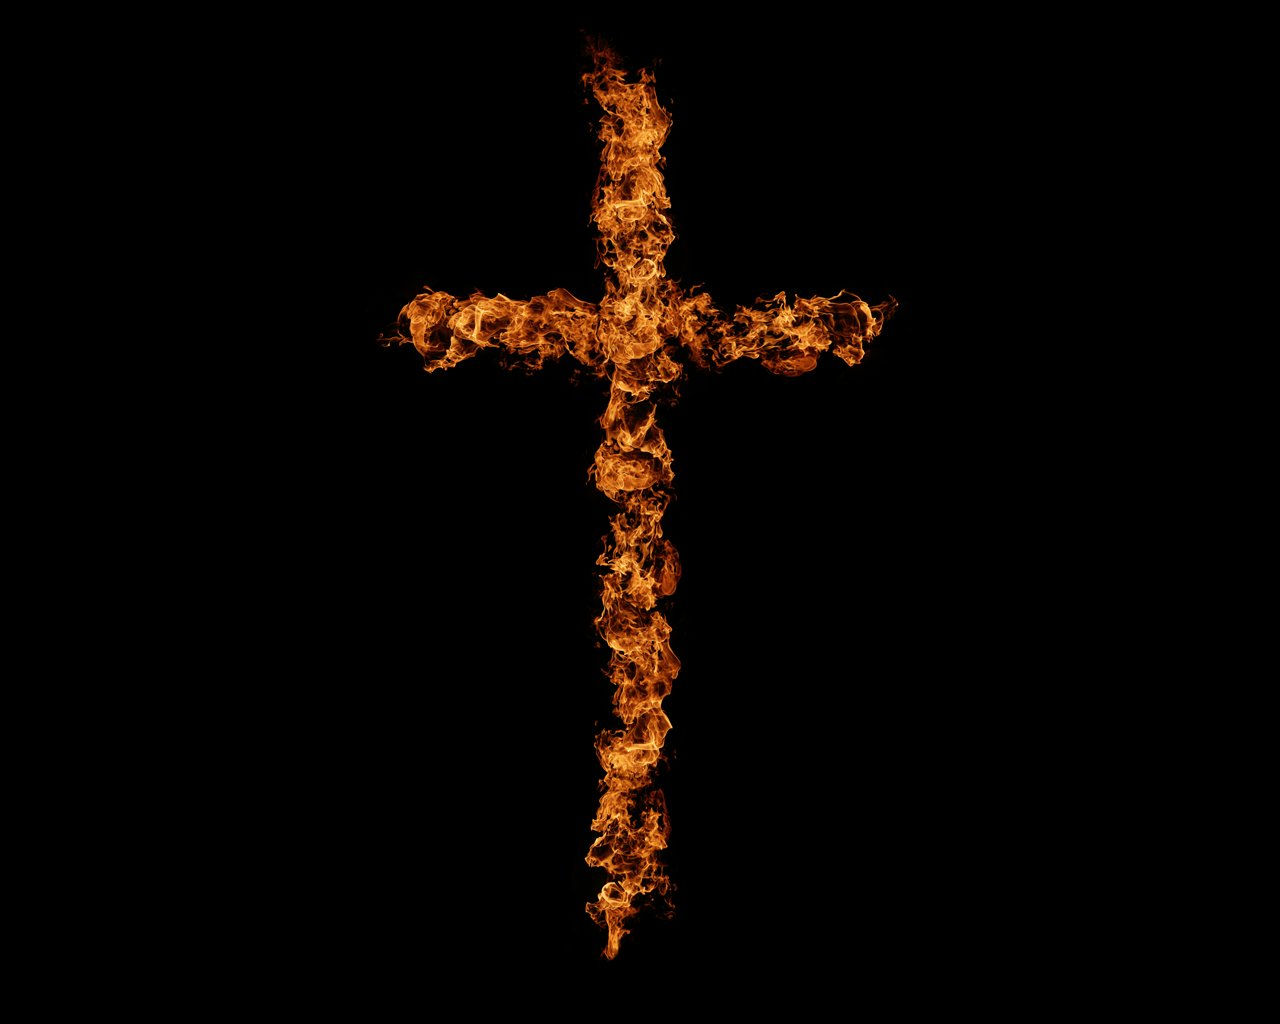 Cross Wallpapers for Download Cool Christian Wallpapers 1280x1024